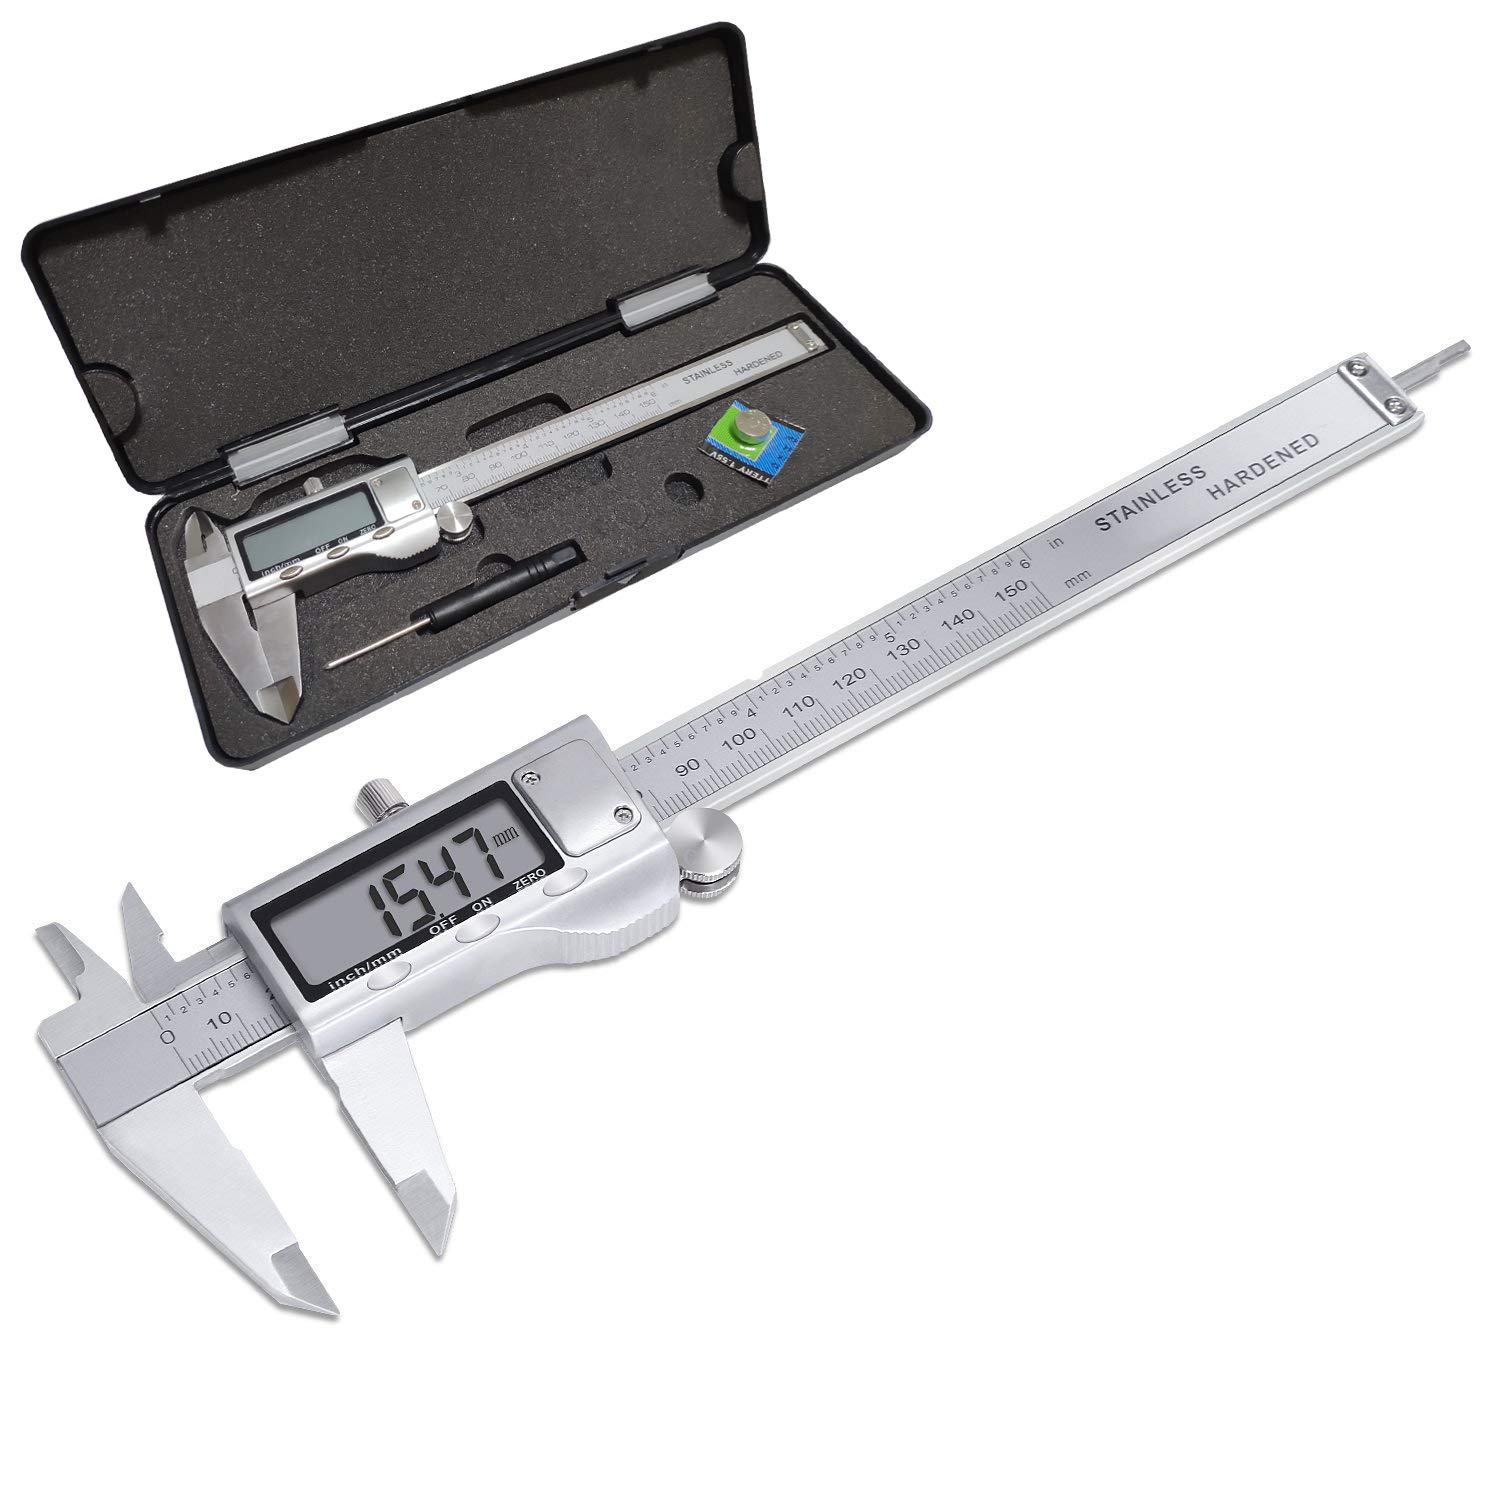 Electronic Digital Vernier Caliper, LOUISWARE Stainless Steel Caliper 150mm/0-6 inch Measuring Tools with Extra-Large LCD Screen, inch/Metric Conversion